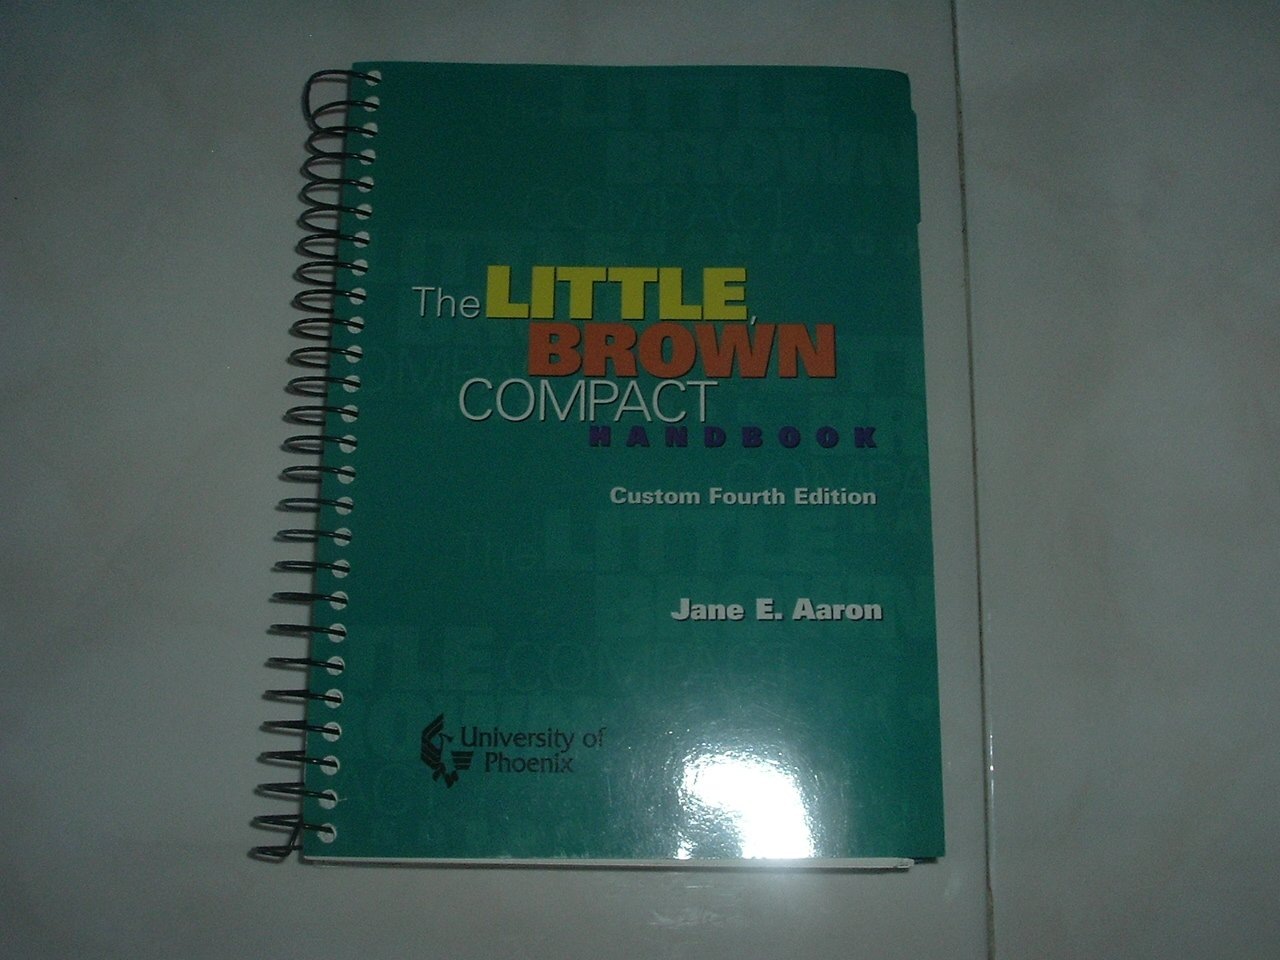 The Little Brown Compact Handbook -  Sprial Soft Cover